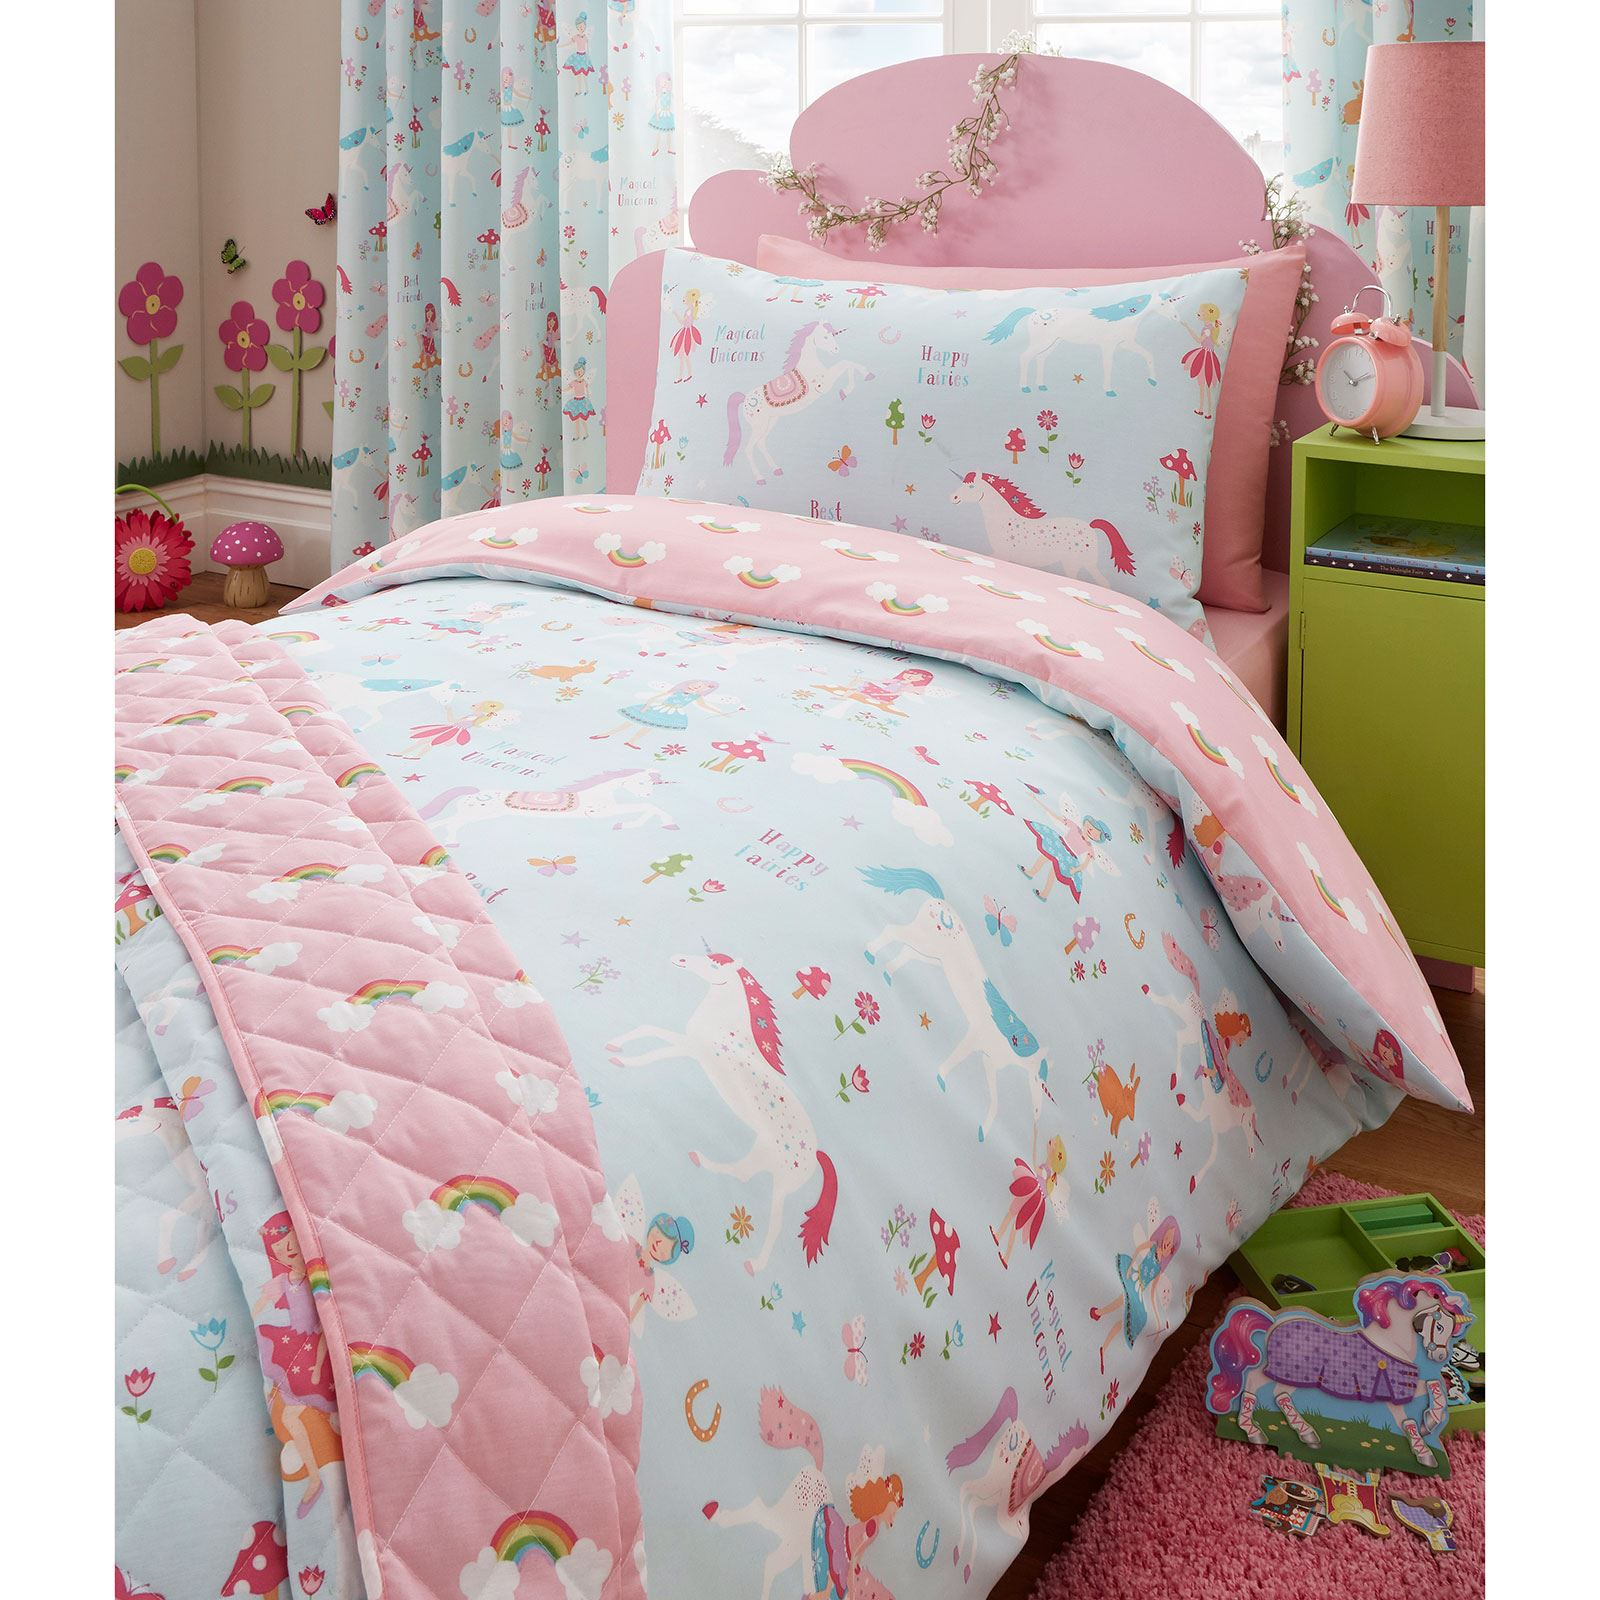 Magical unicorn single duvet cover kids bedding unicorn - Complete bedroom sets with curtains ...